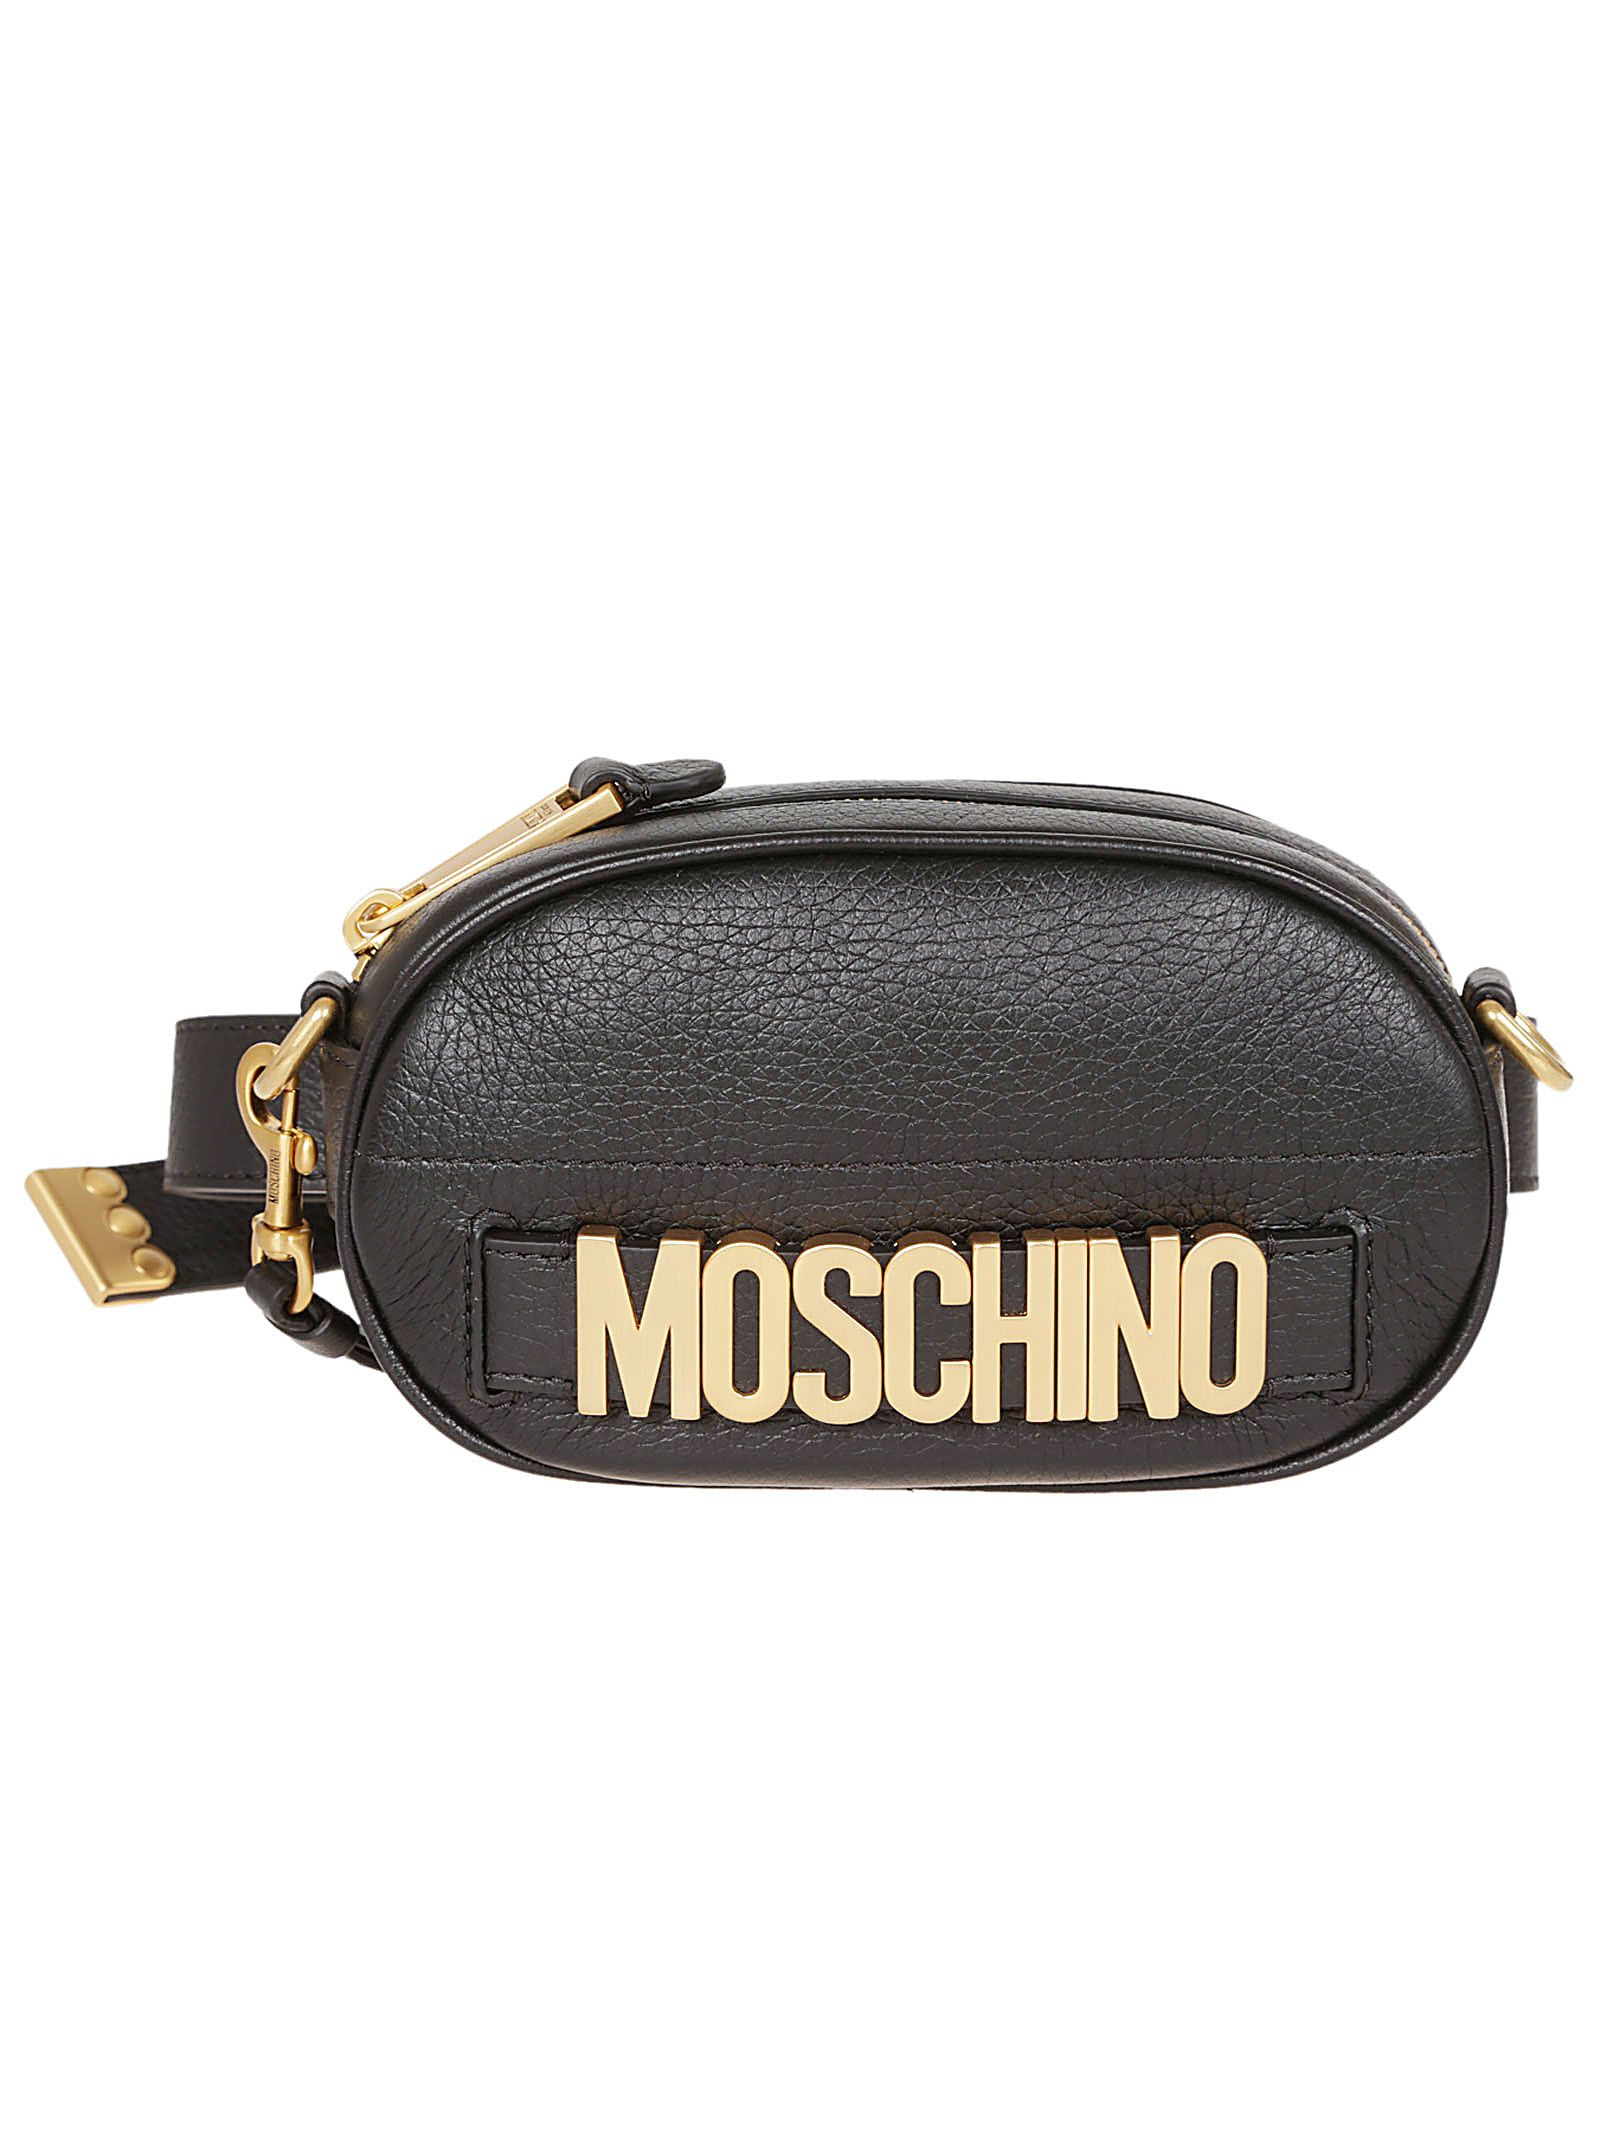 Moschino Belt Lettering Bag